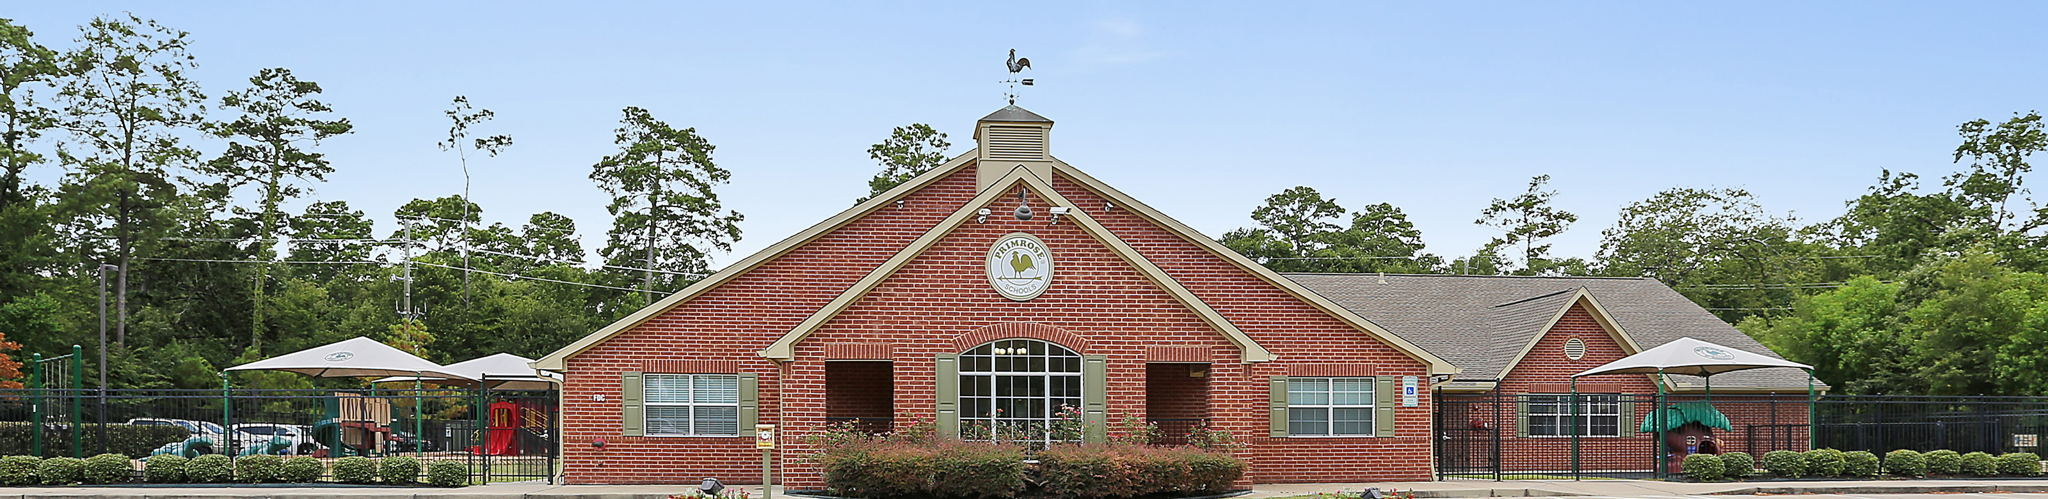 Exterior of a Primrose School of Kingwood